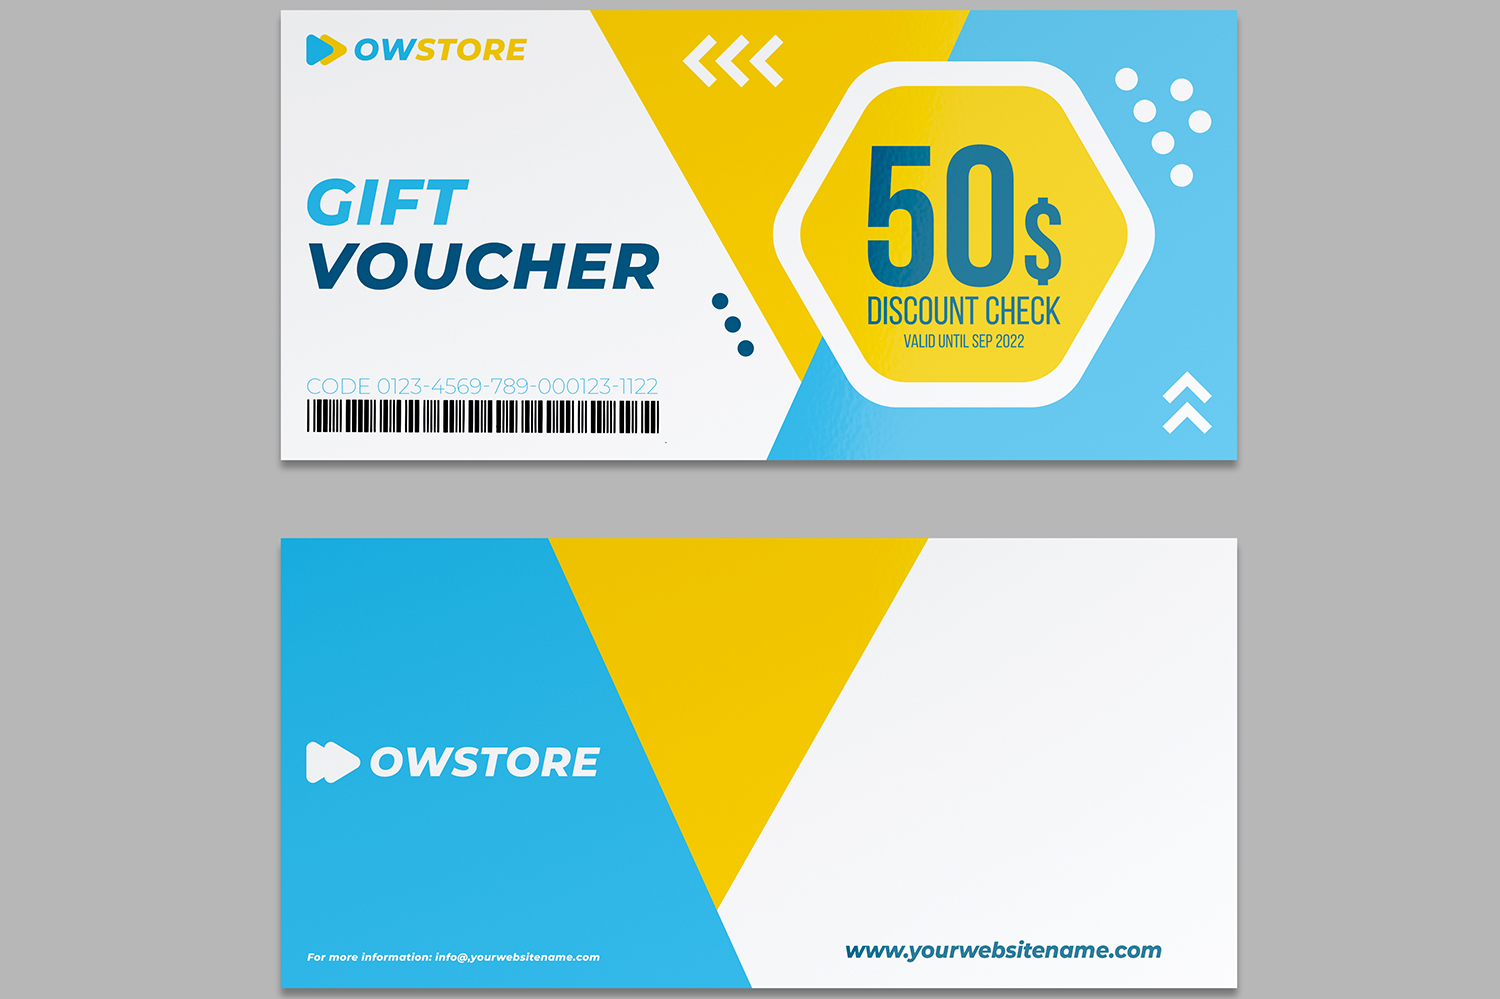 Gift Voucher Card Template Vol.2 example image 2